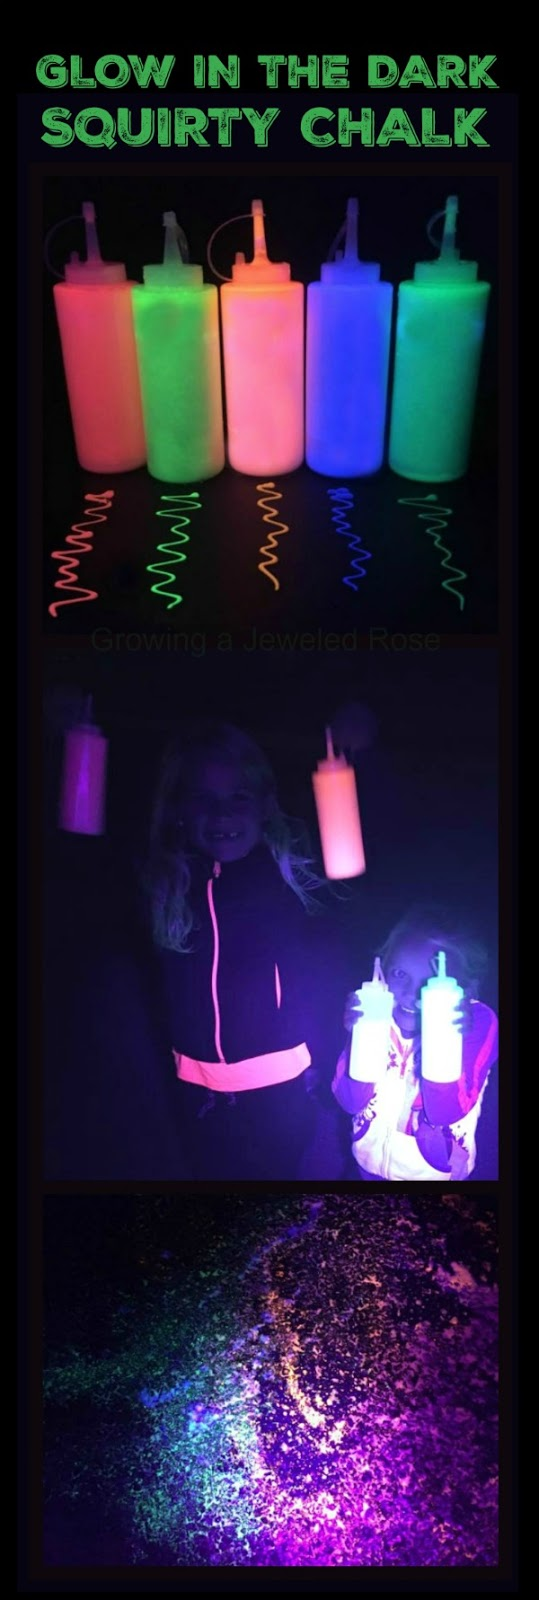 GOT 5 MINUTES?  Make this and blow the kids away! (Glow in the dark chalk paint)